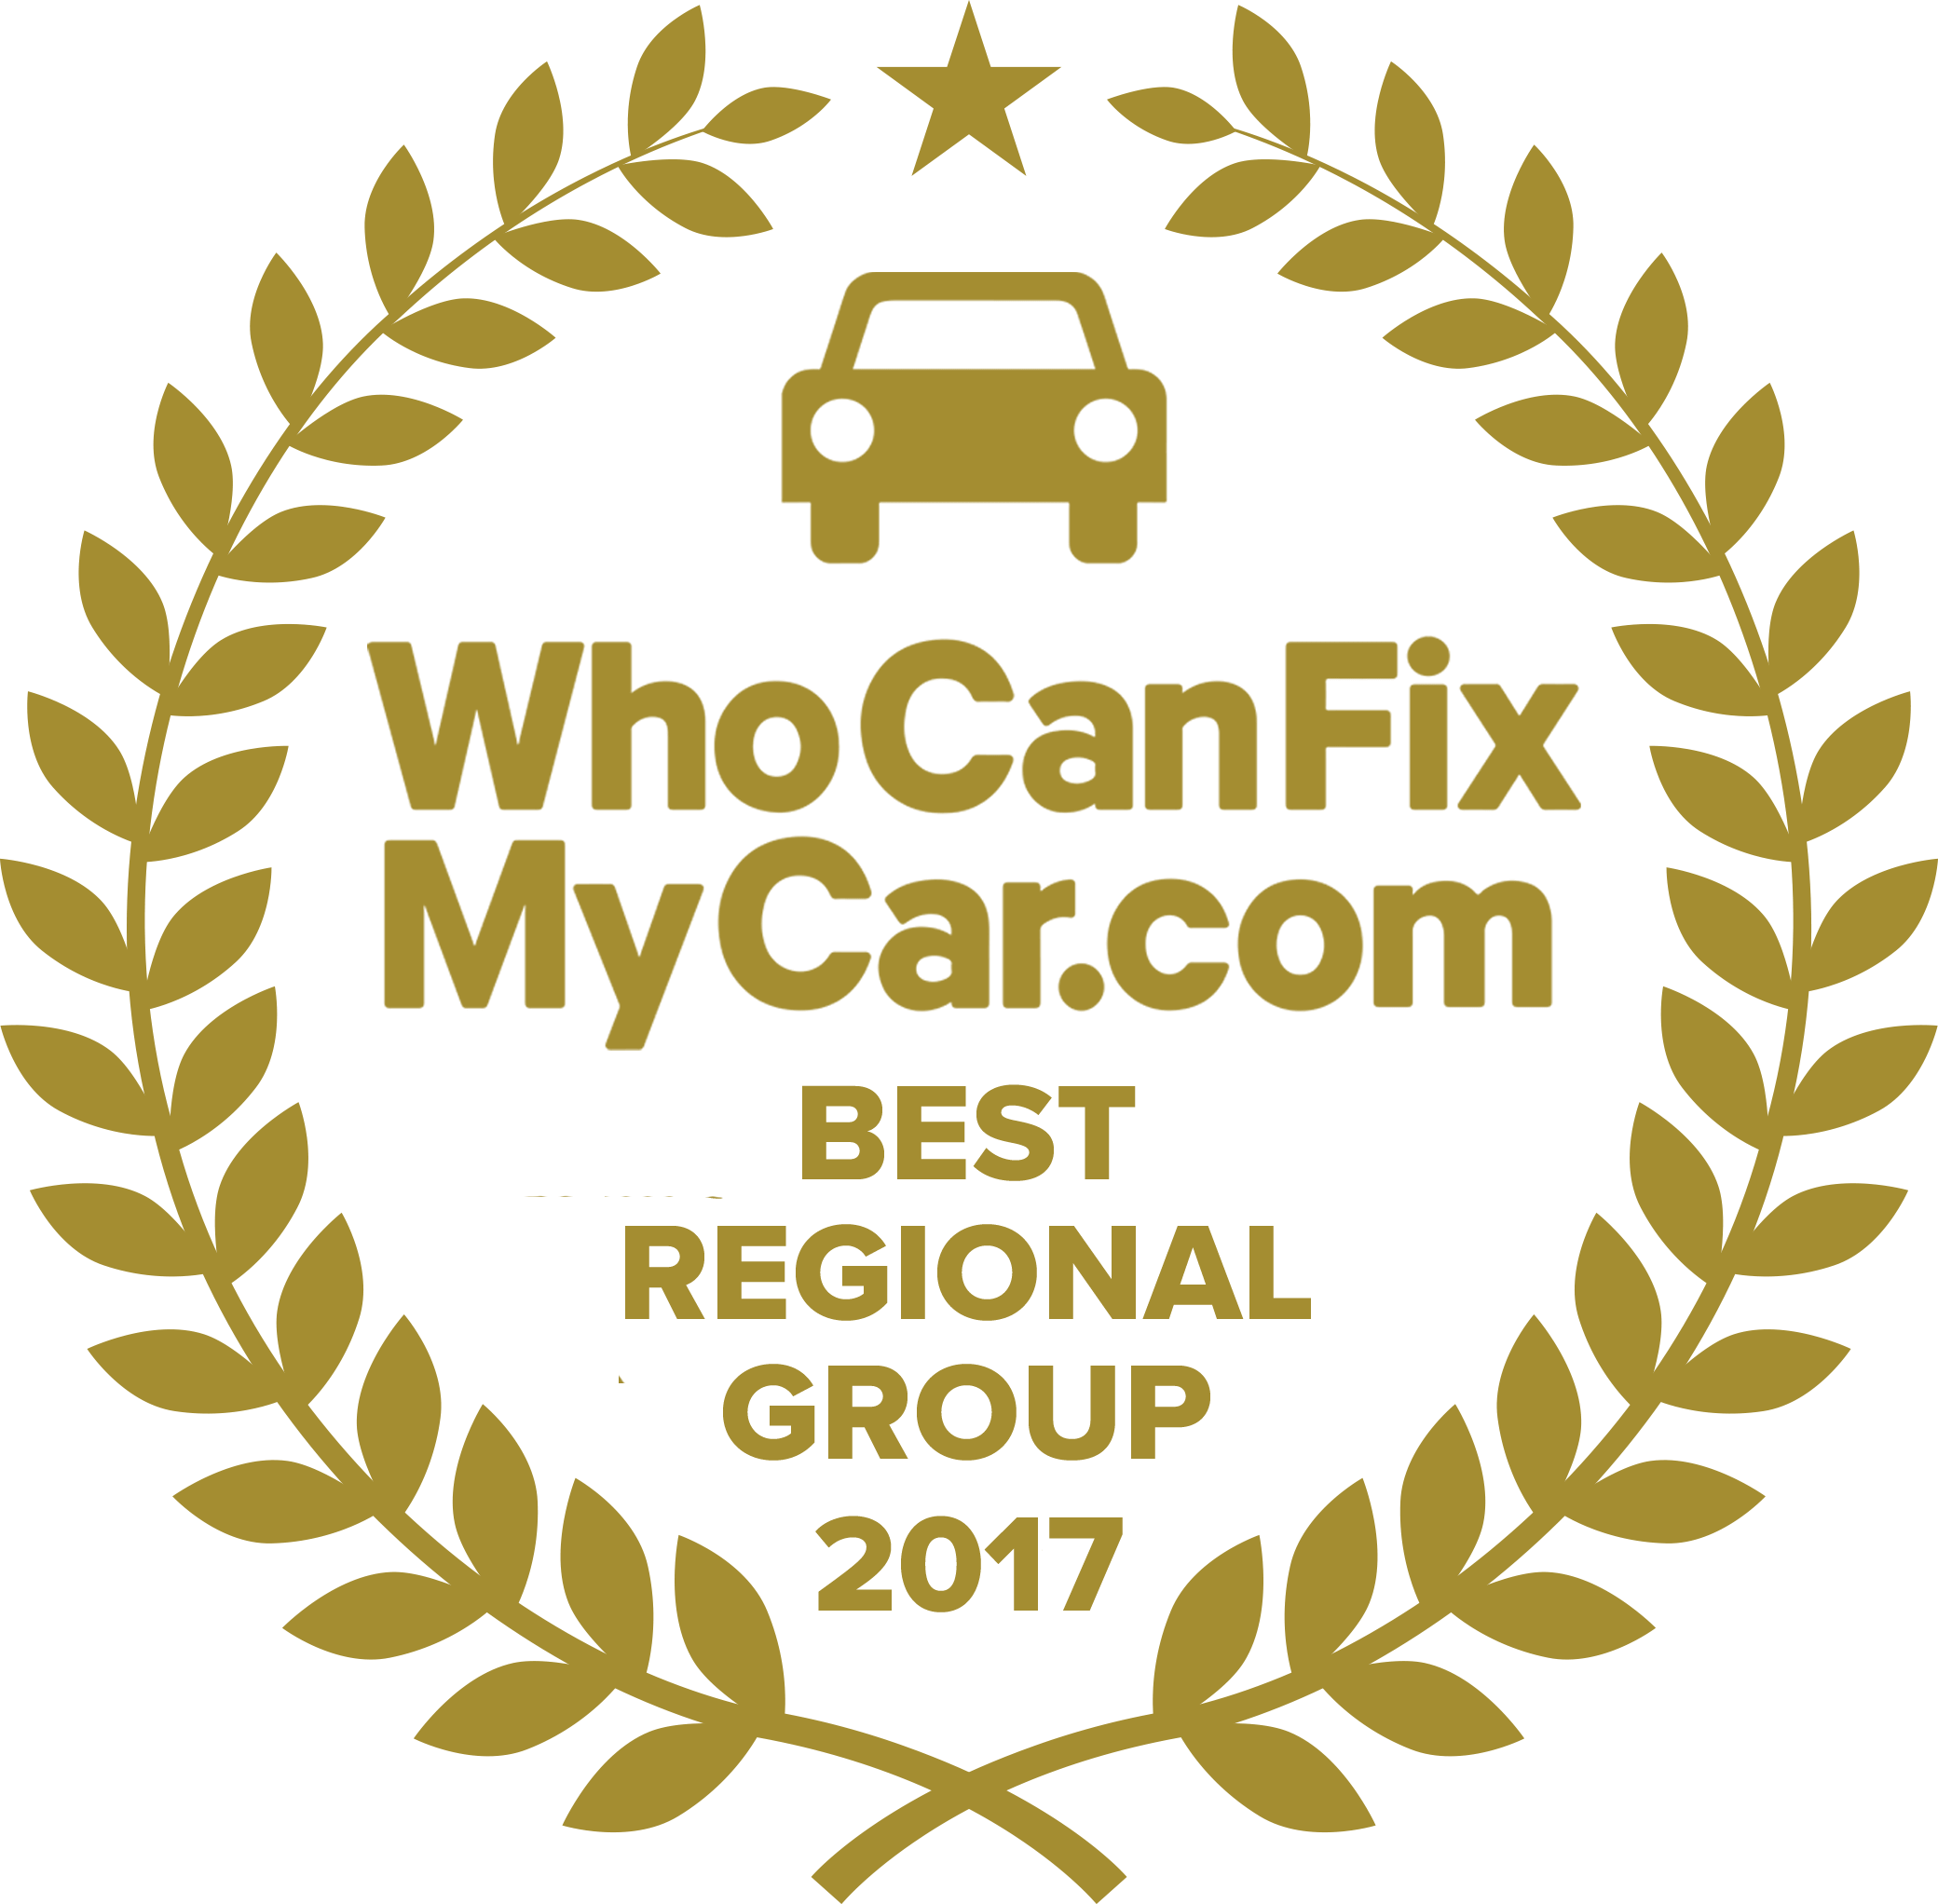 Best Regional Group - 2017